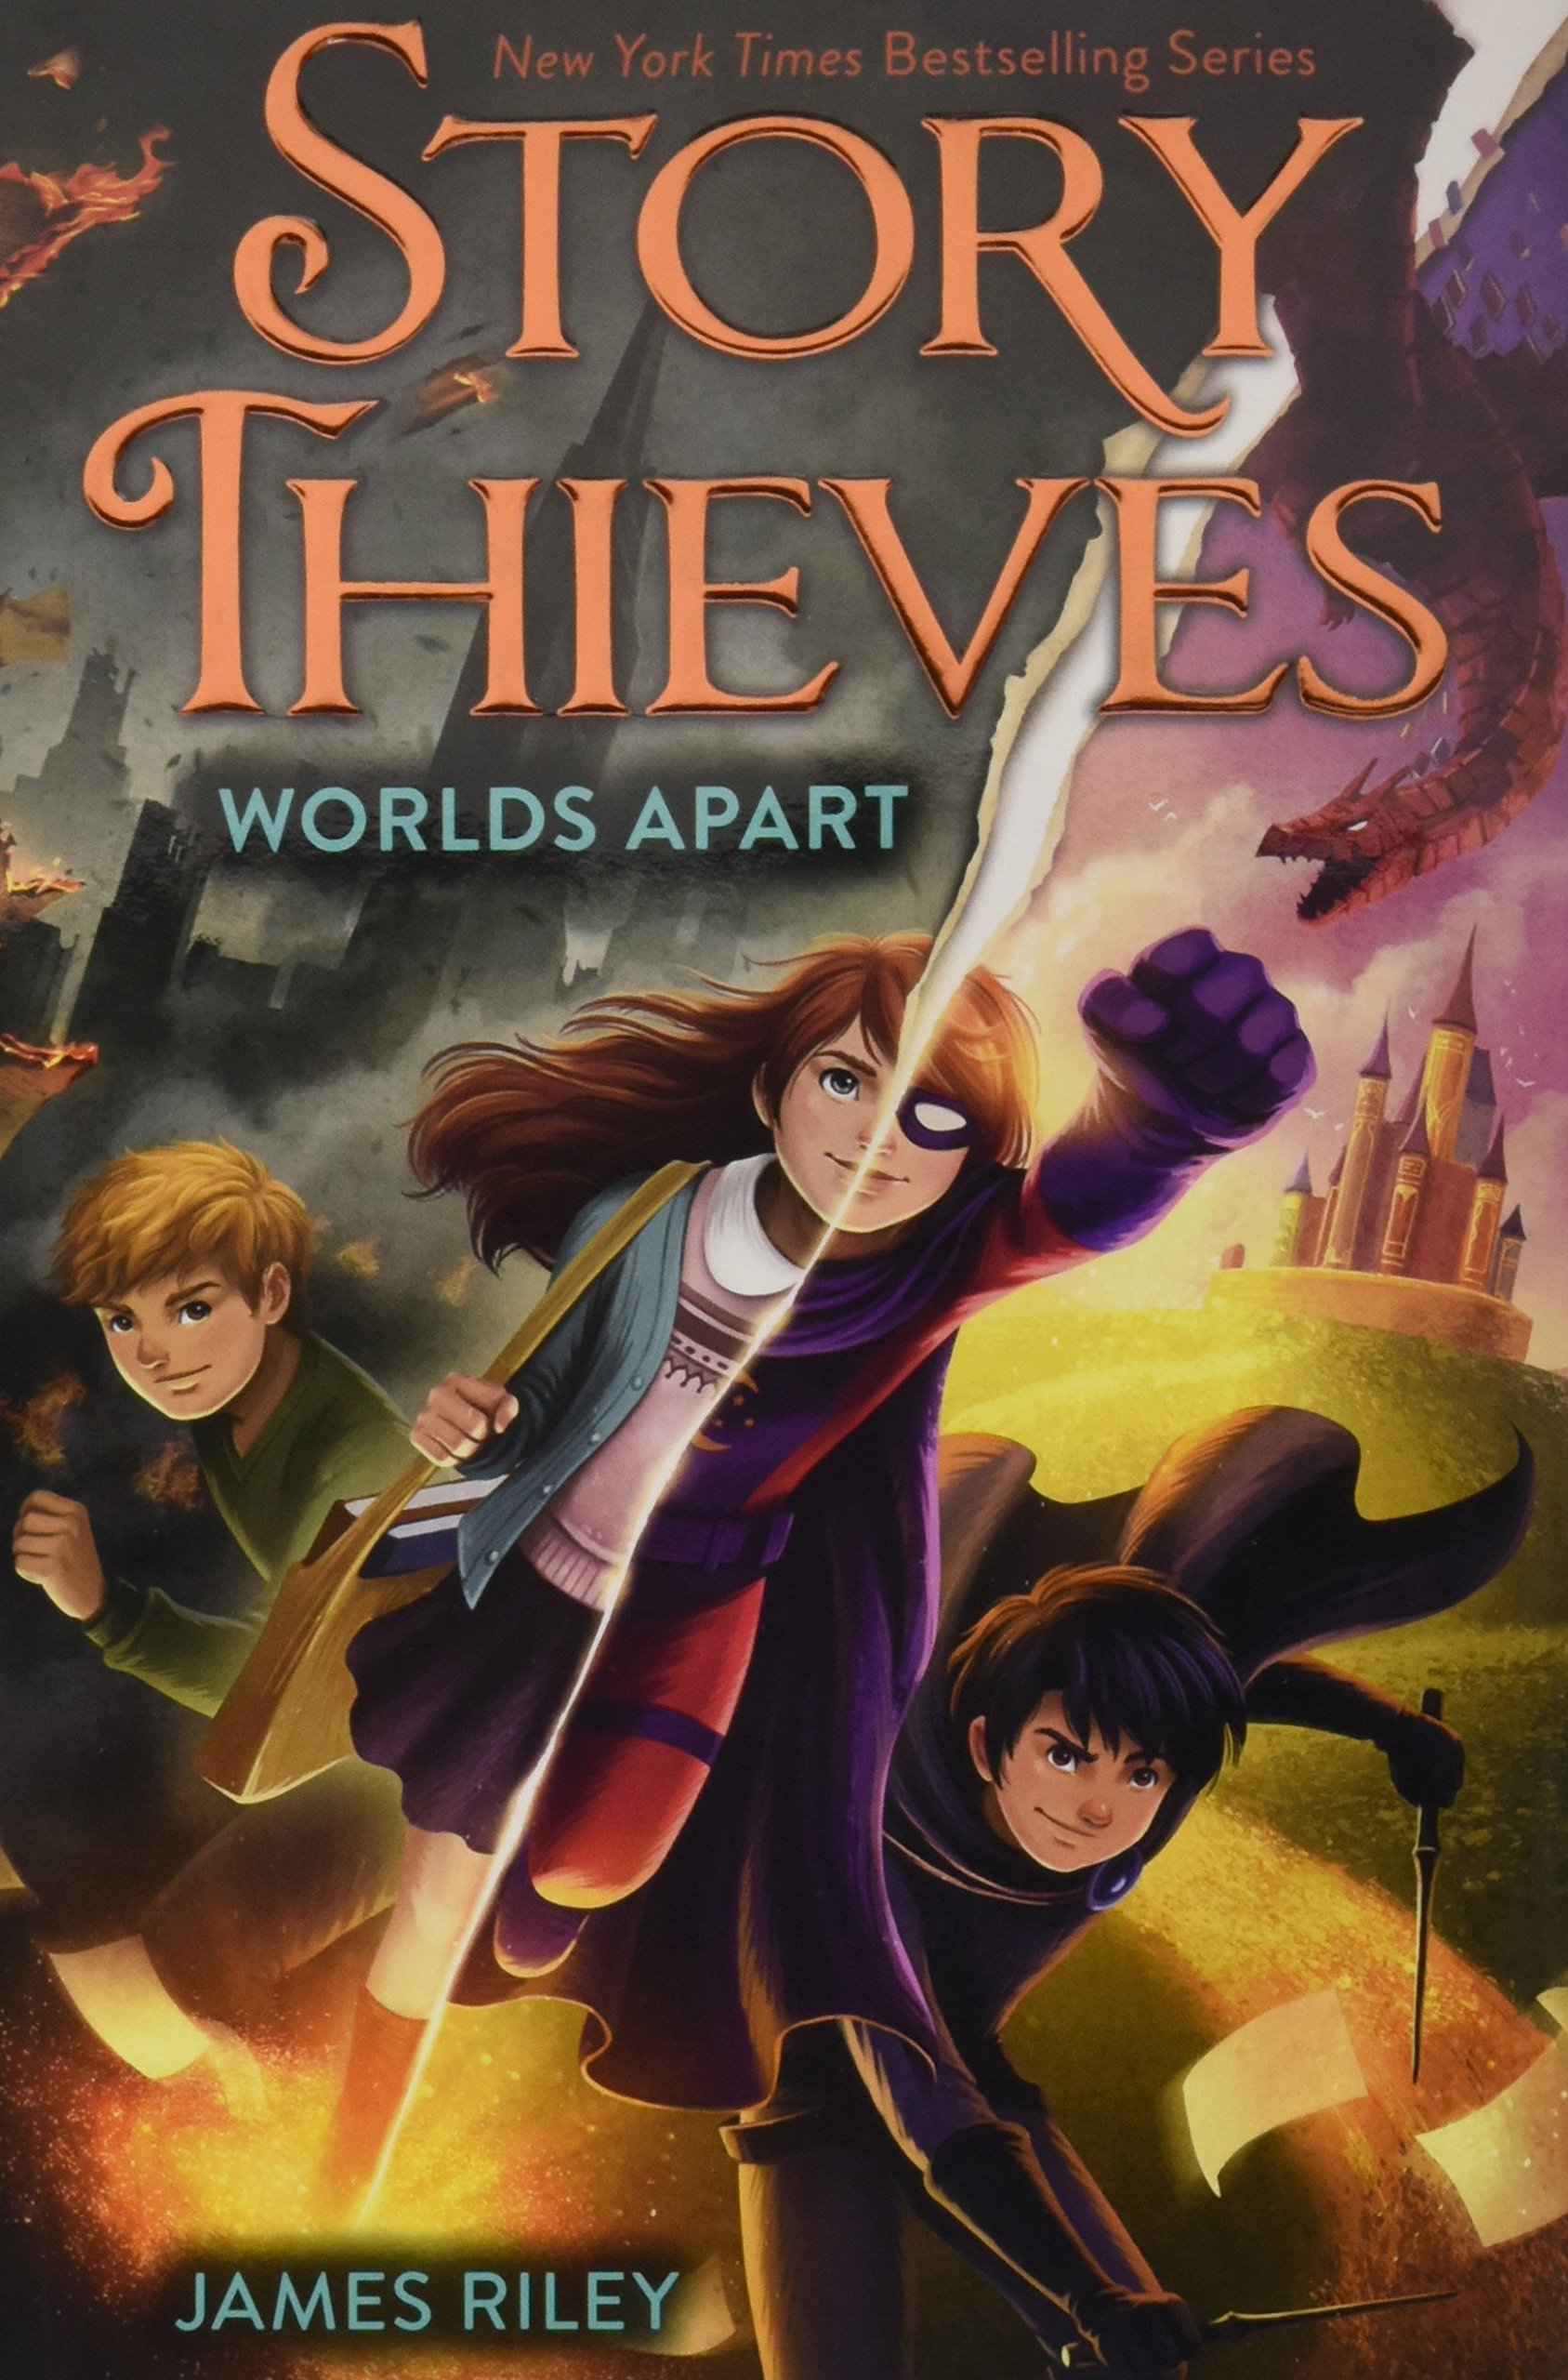 STORY THIEVES: WORLDS APART (BOOK 5) - Bethany and Owen have failed. The villain they have come to know as Nobody has ripped asunder the fictional and nonfictional worlds, destroying their connection. Bethany has been split in two, with her fictional and nonfictional selves living in the separate realms.But weirdly, no one seems to mind. Owen—and every other nonfictional person—have lost their imaginations, so they can't picture their lives any differently. Then Owen gets trapped in a dark, dystopian reality five years in the future, where nothing is needed more desperately than the power to imagine. Fictional Bethany is thrilled to be training with her father as his new sidekick, Twilight Girl—until she realizes that the fictional reality will fade away completely without the nonfictional world to hold it together. In this final installment of the genre-bending Story Thieves series, Owen and Bethany will be forced to risk everything to defeat Nobody and save multiple realities.BUY: AMAZON | BARNES & NOBLE | INDEPENDENT STORES